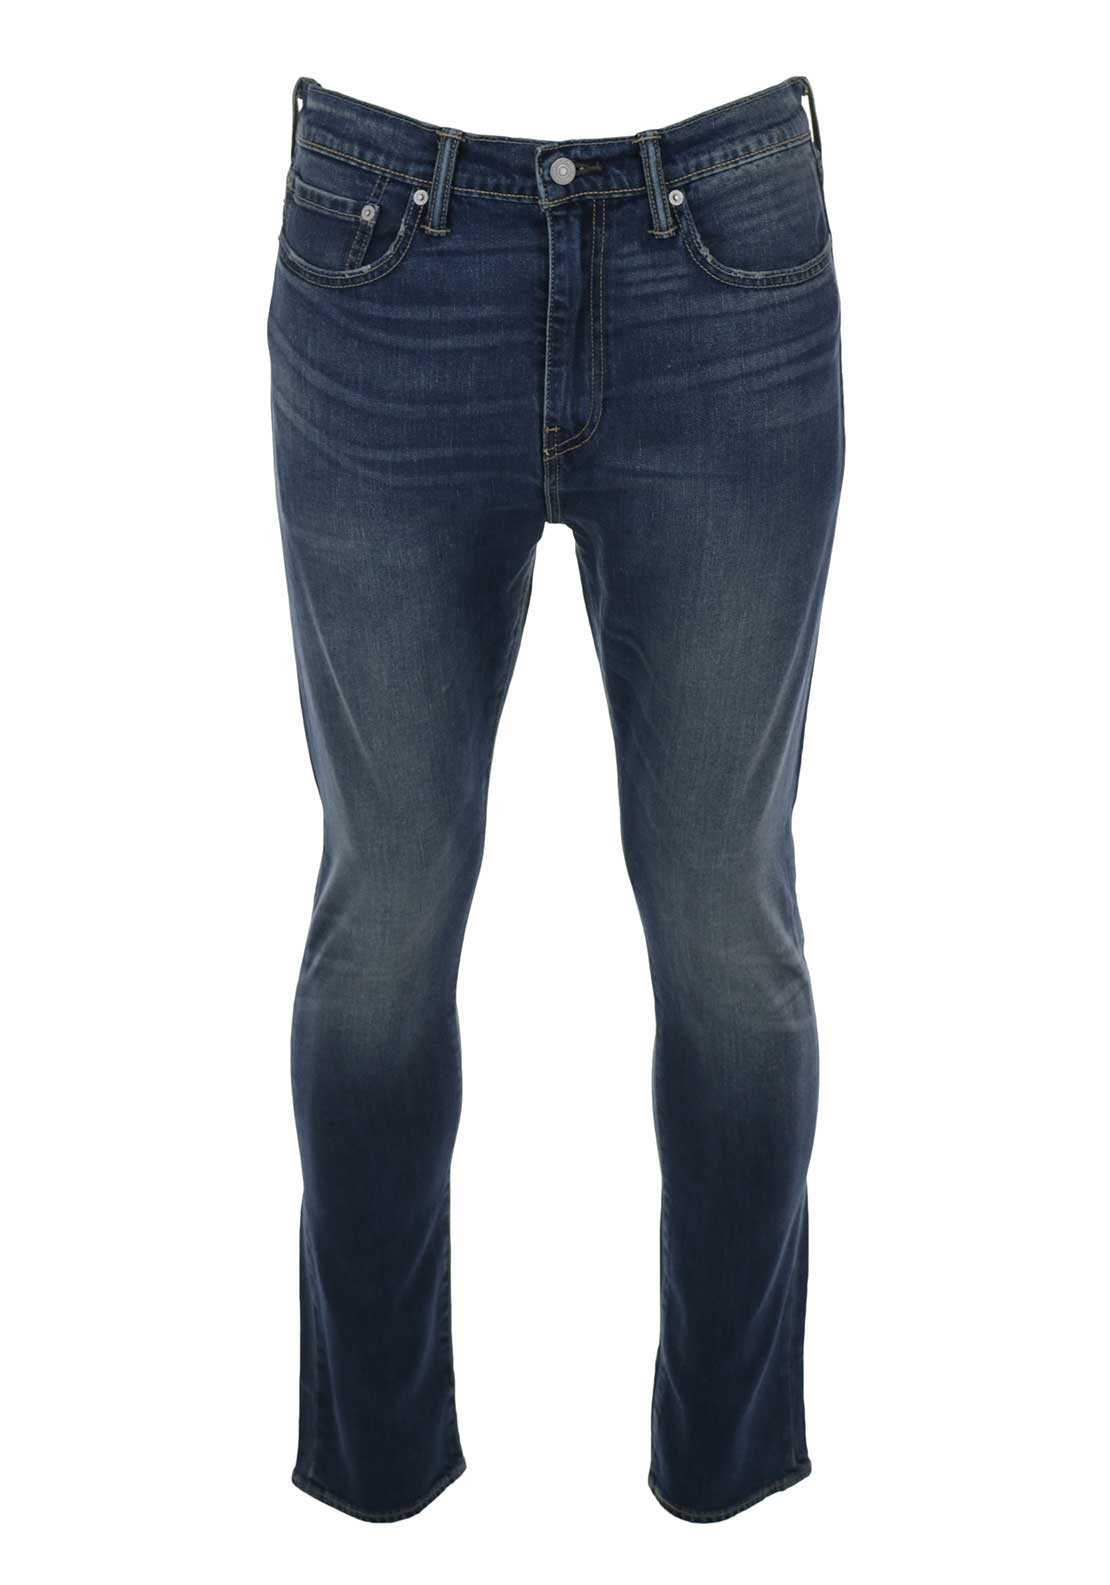 Levis Mens 511 Slim Fit Jeans, Blue Denim